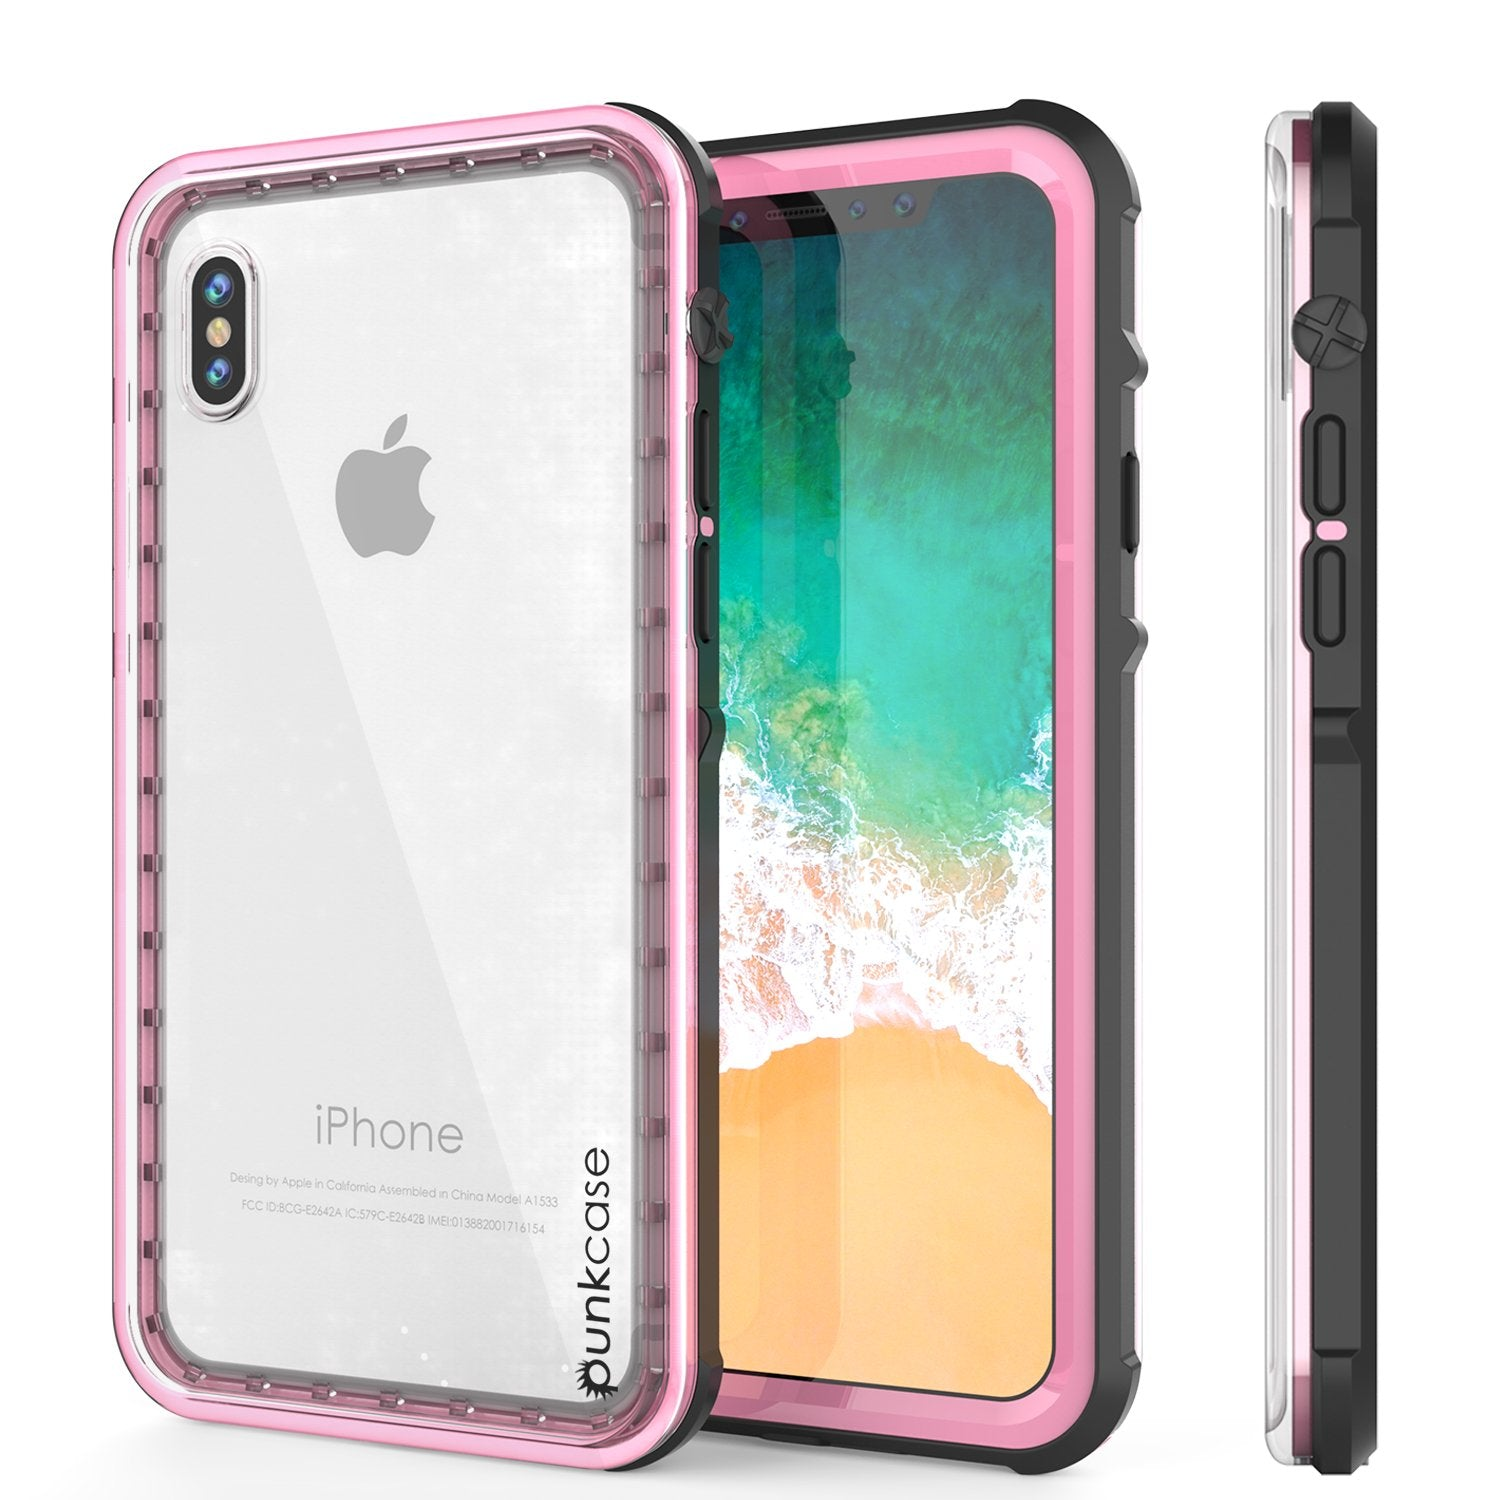 iPhone XS Max Case, PUNKCase [CRYSTAL SERIES] Protective IP68 Certified Cover [Pink]